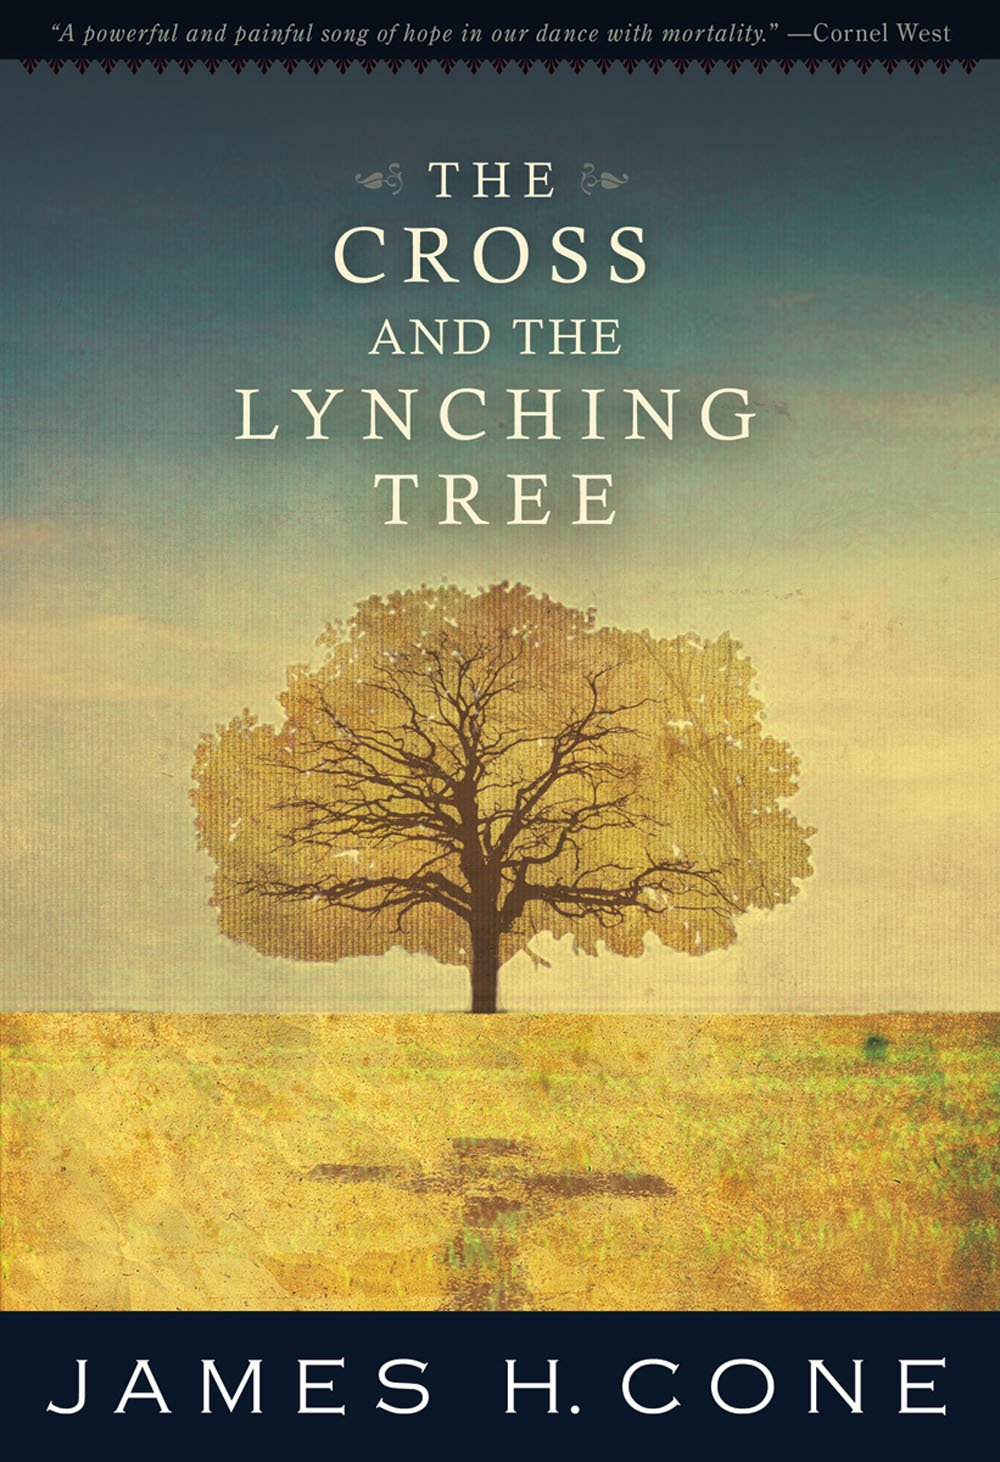 For Finding Christ in America. - This book revolutionized my understanding of Christ and the US church. Growing up, I always heard that Jesus died for my sins because I'm a sinner. I also always grew up white (#obvi).But what if Christ didn't just die for our sins but also for our suffering? What if the cross stands in solidarity with those who suffer? What if the greatest example of Christ on the cross in American history is the person of color hung on a southern tree? What are white people missing (and how are we sinning) by refusing to recognize our tragic past?Orbis Books (2011)